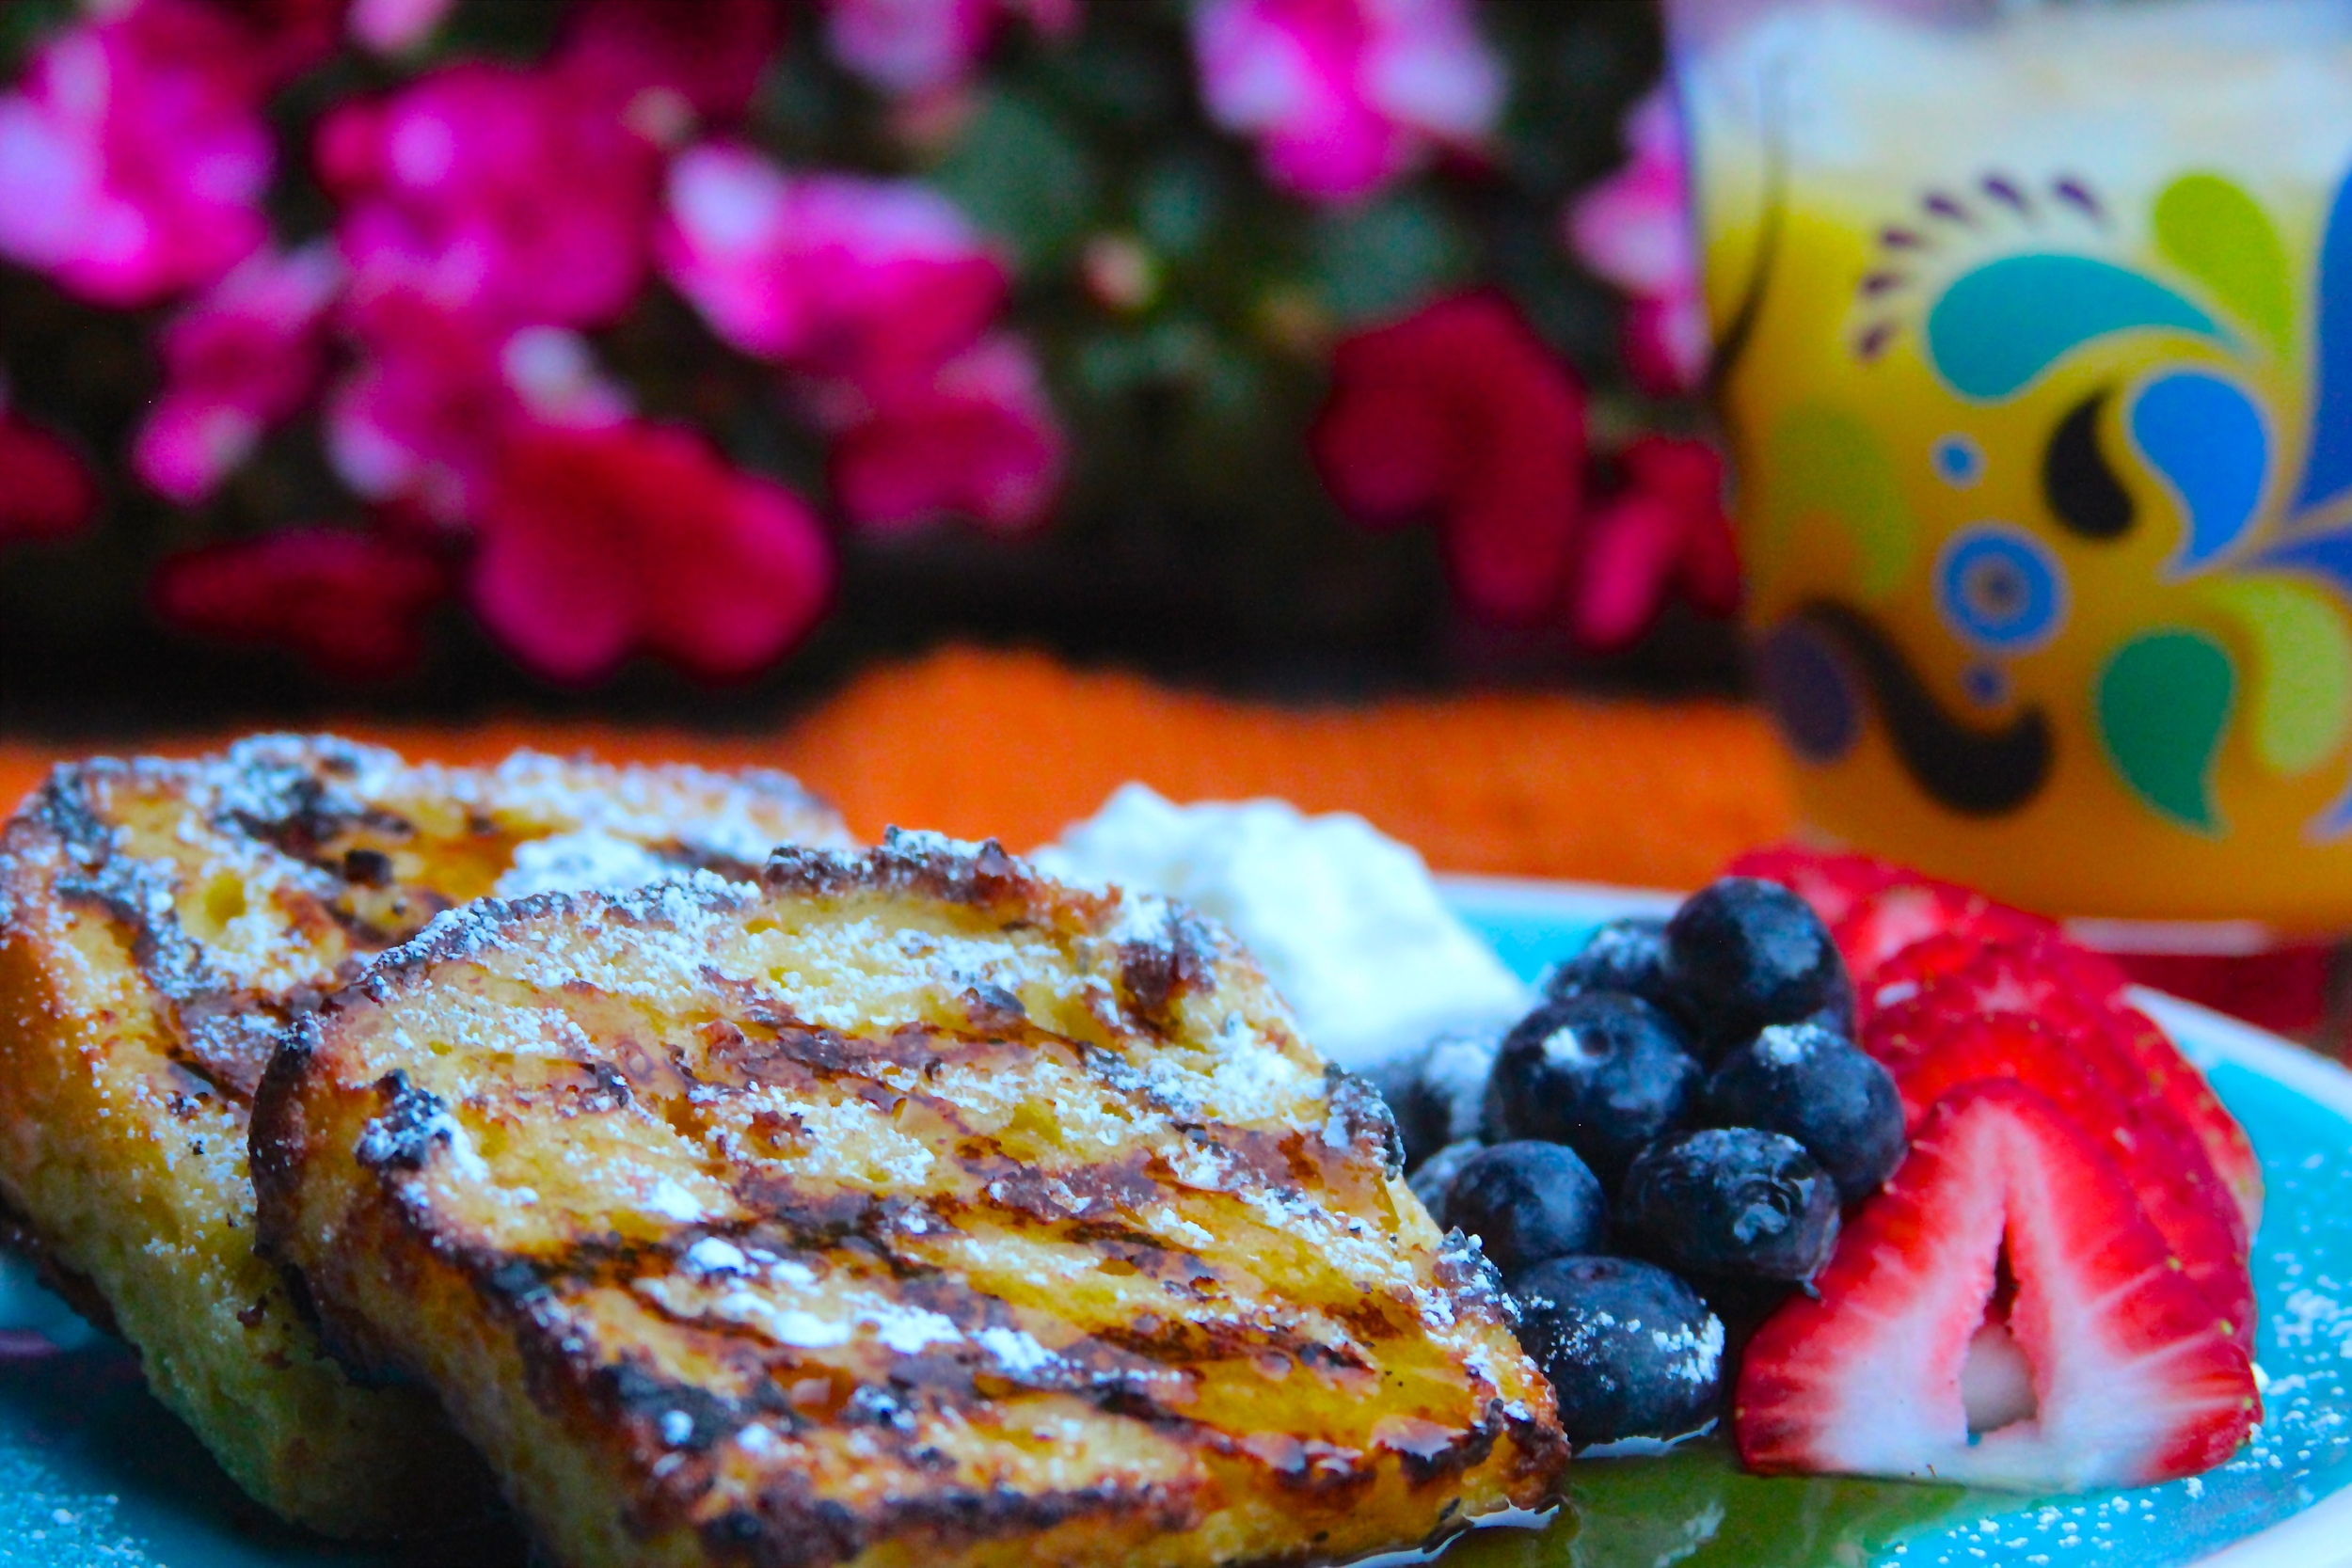 Grilled Lemon Pound Cake French Toast with Smoked Maple Syrup